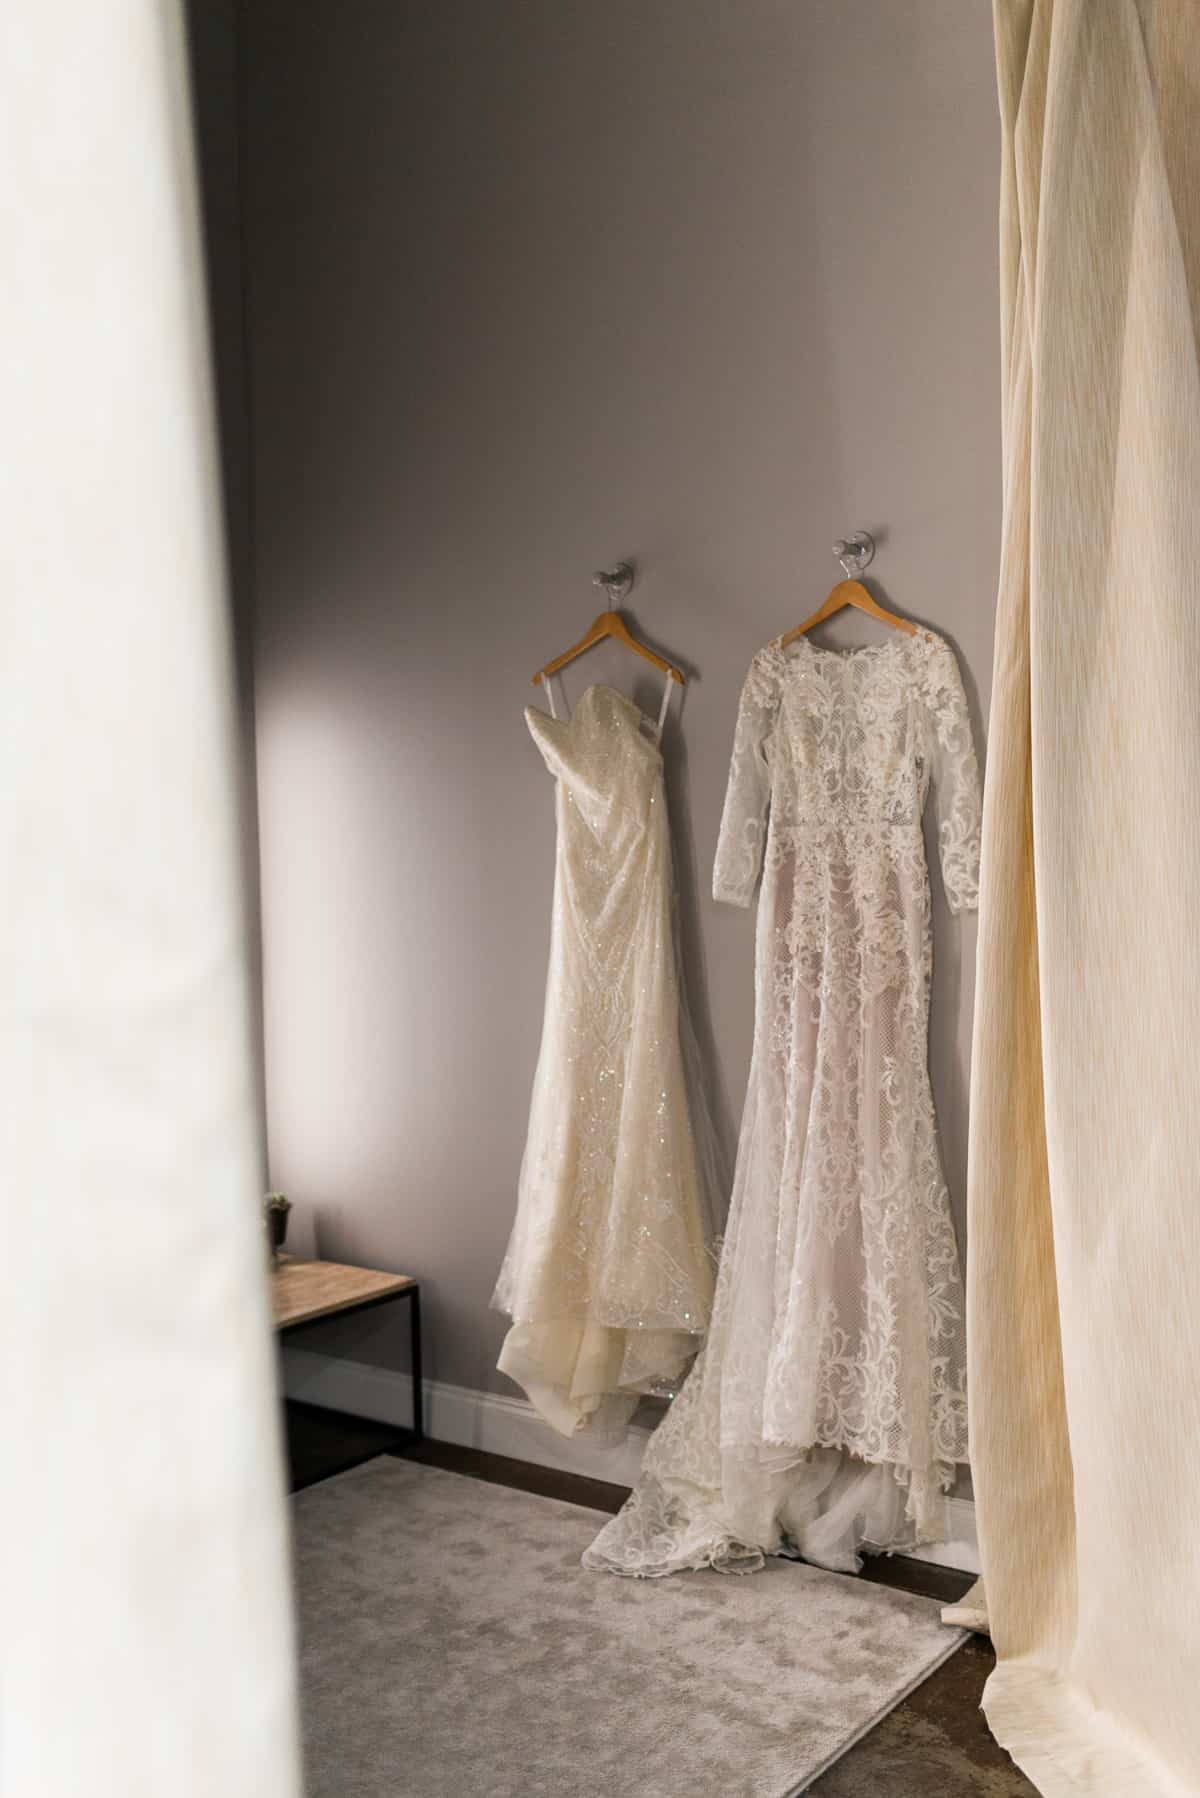 white and ivory designer bridal gowns hanging in The Bridal Finery dressing room